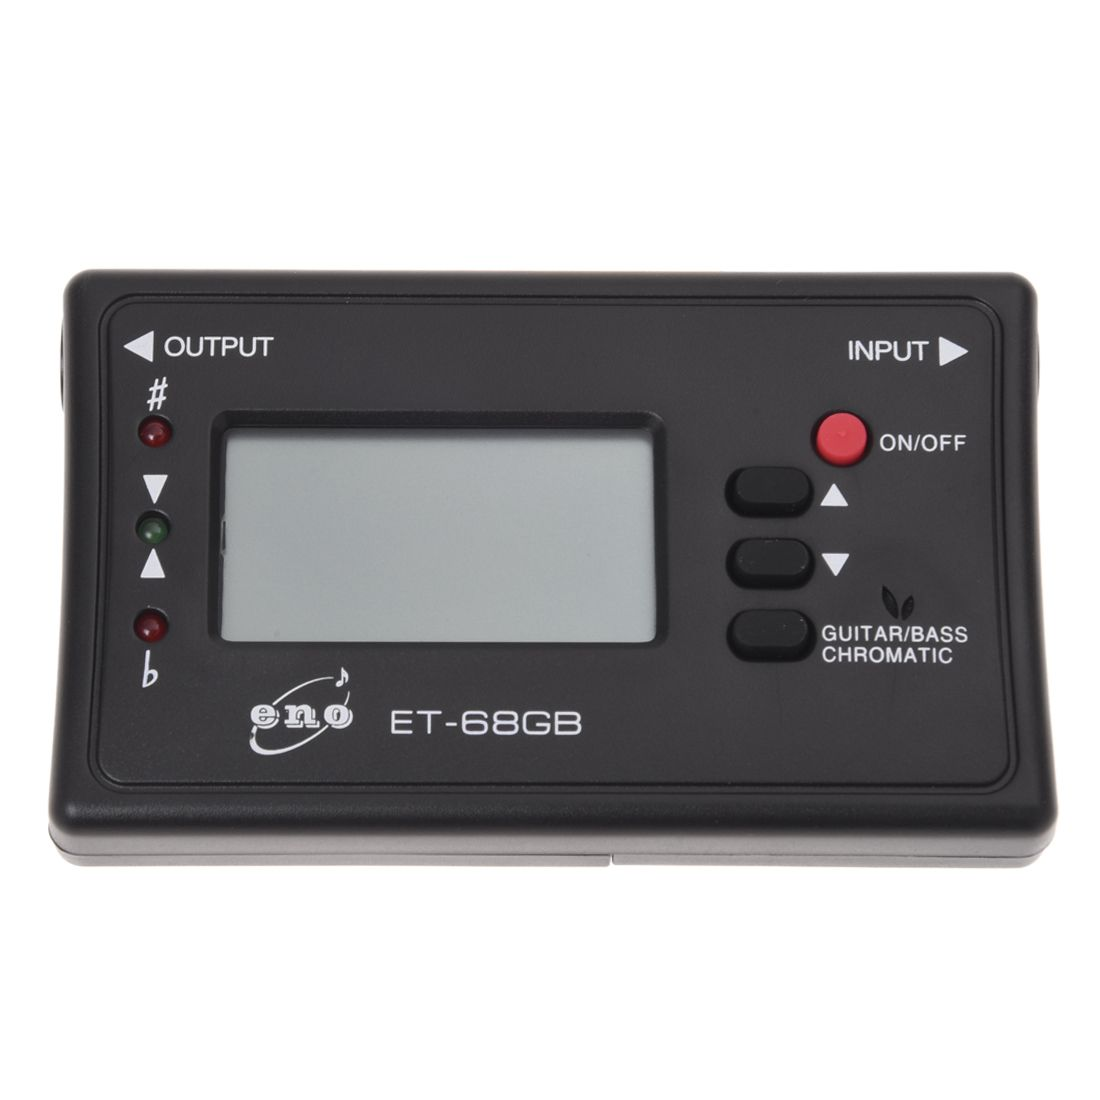 eno chromatic tuner digital tuner for professional bass guitar in guitar parts accessories. Black Bedroom Furniture Sets. Home Design Ideas